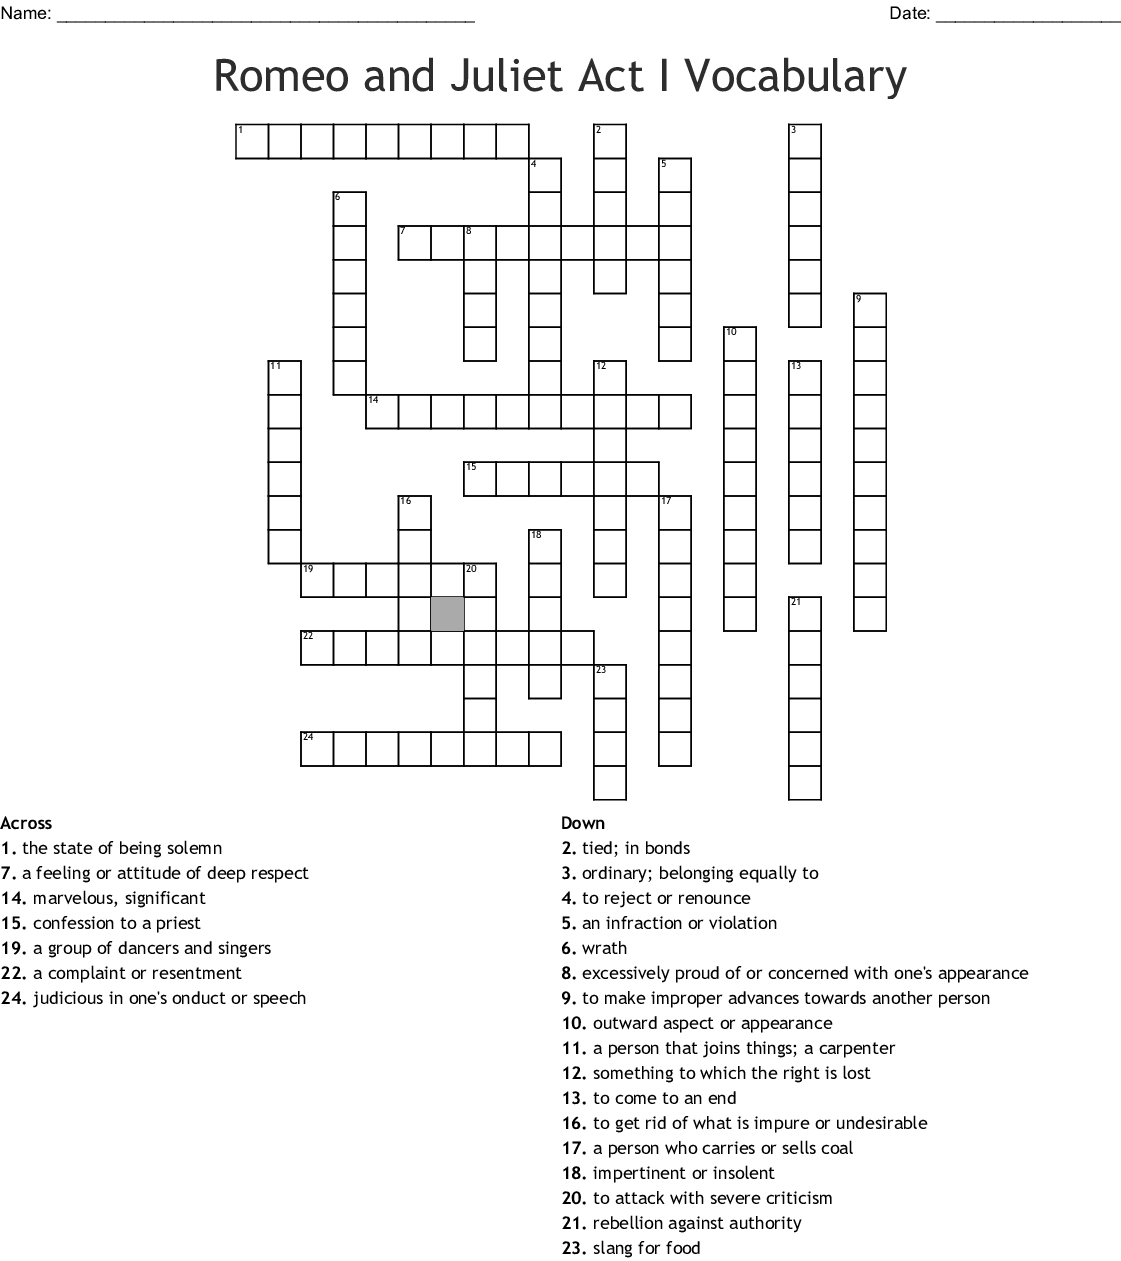 Romeo And Juliet Act I Vocabulary Crossword